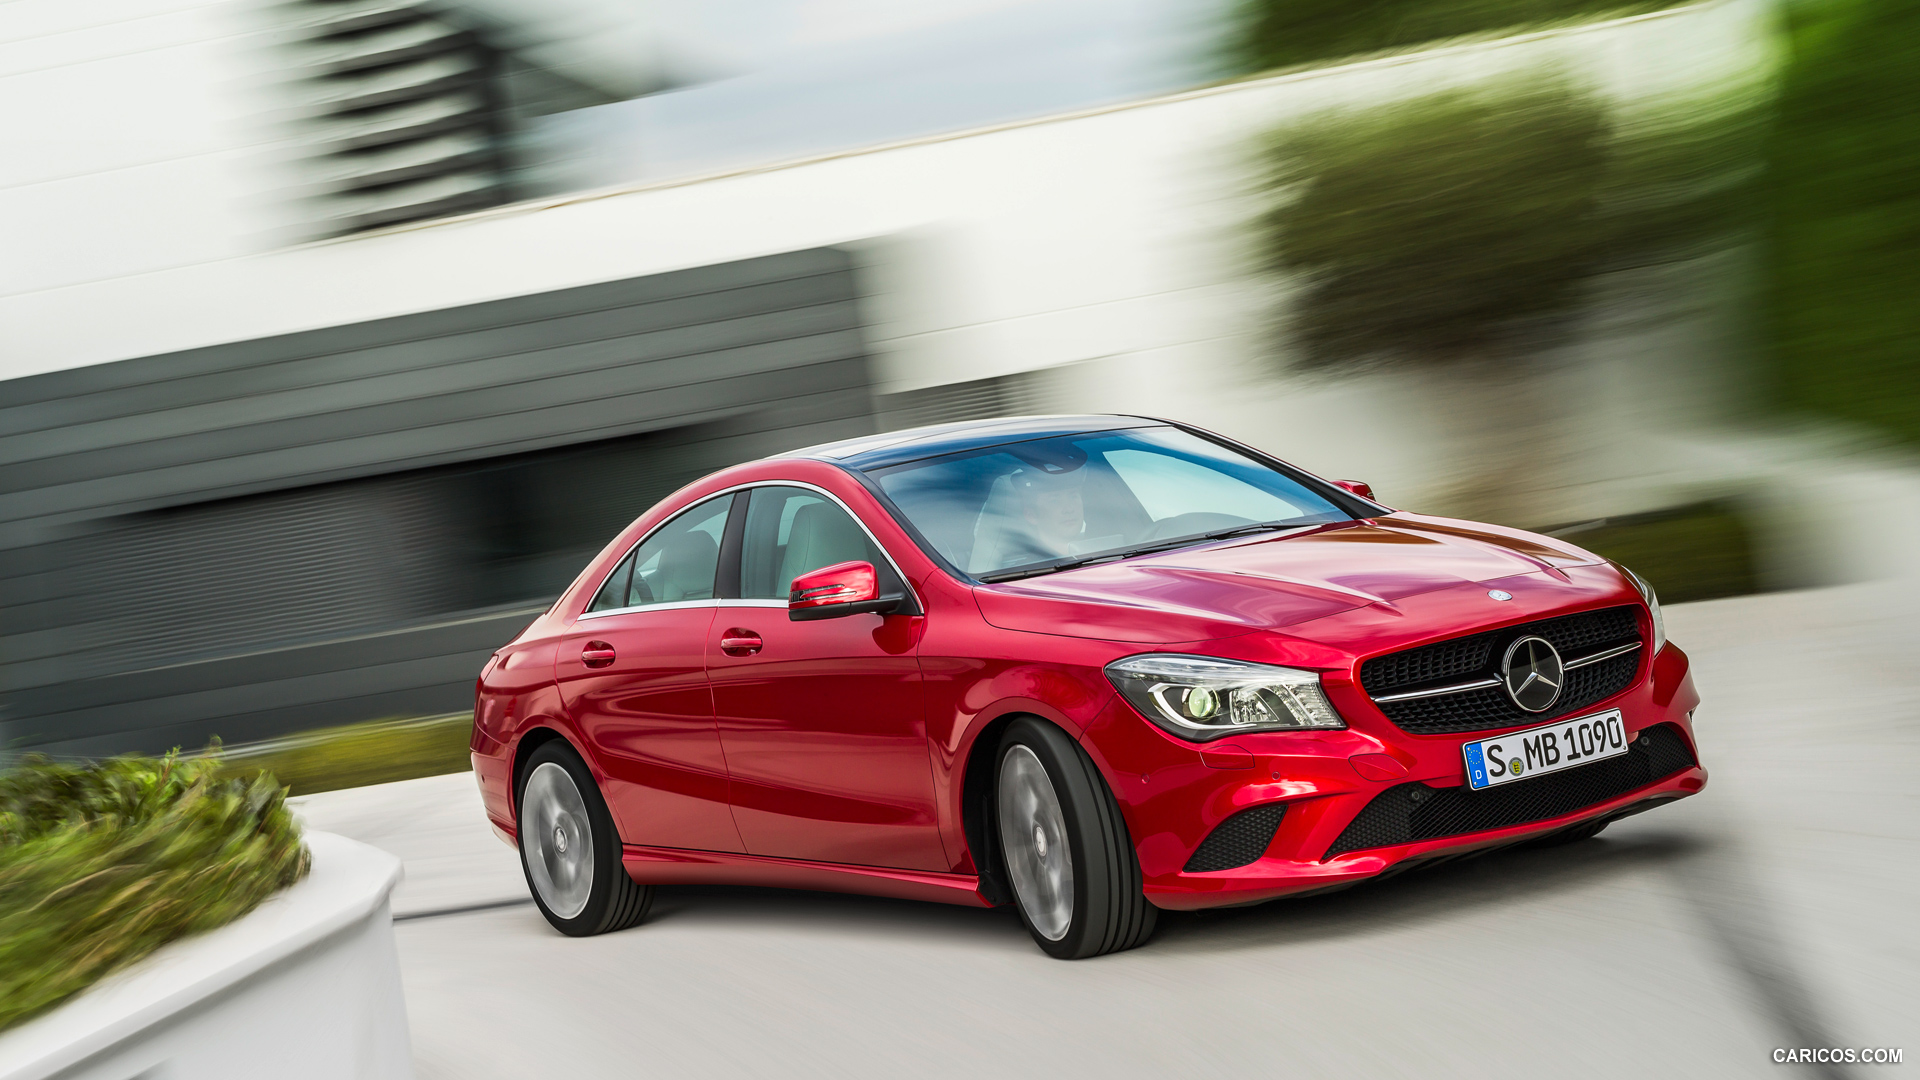 2014 Mercedes Benz CLA Class CLA 220 CDI   Front HD Wallpaper 96 1920x1080